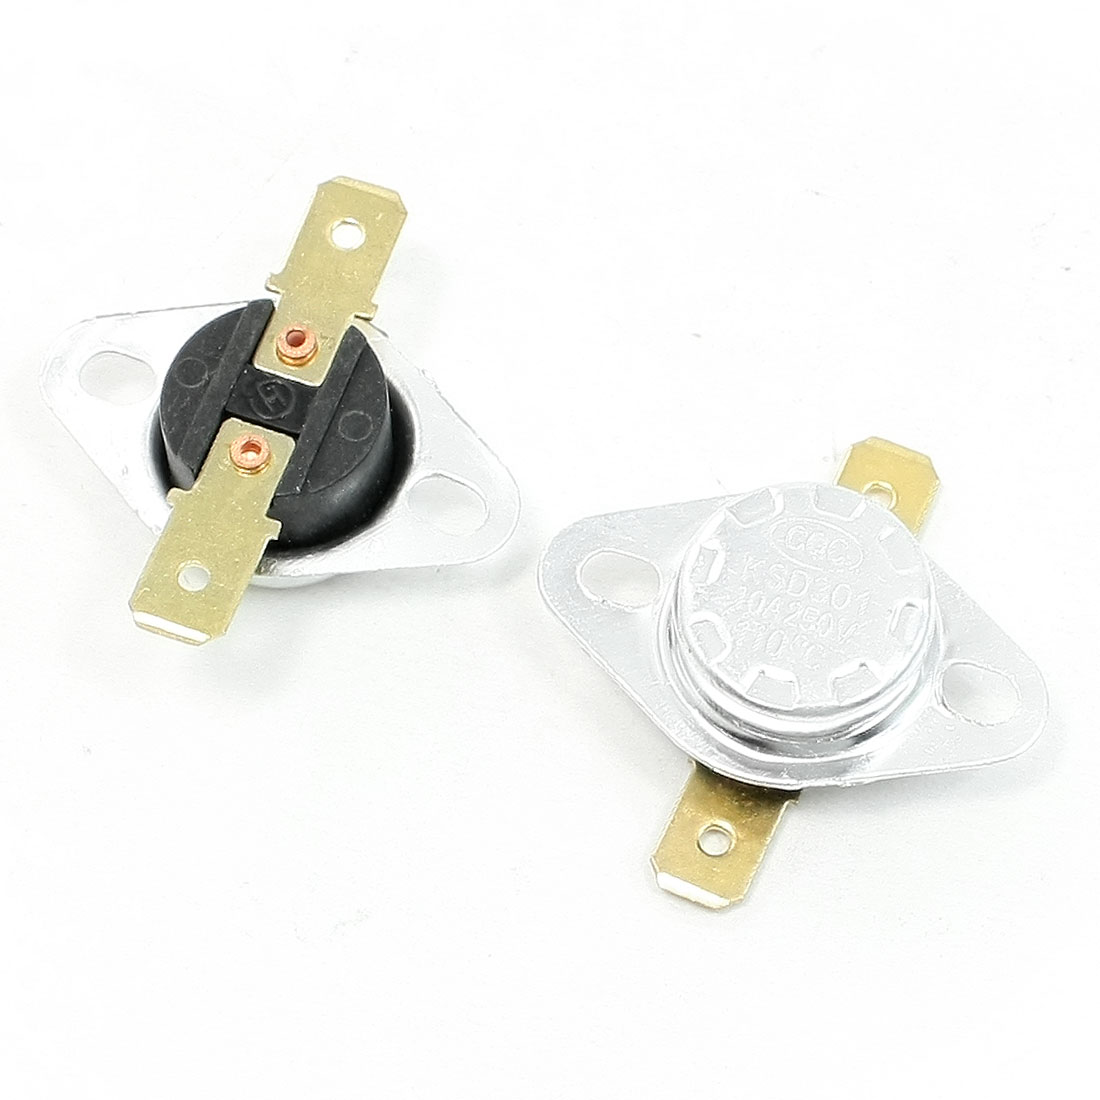 2 Pcs 250V 10A 110 Celsius 230F Temperature Controlled Switch KSD301